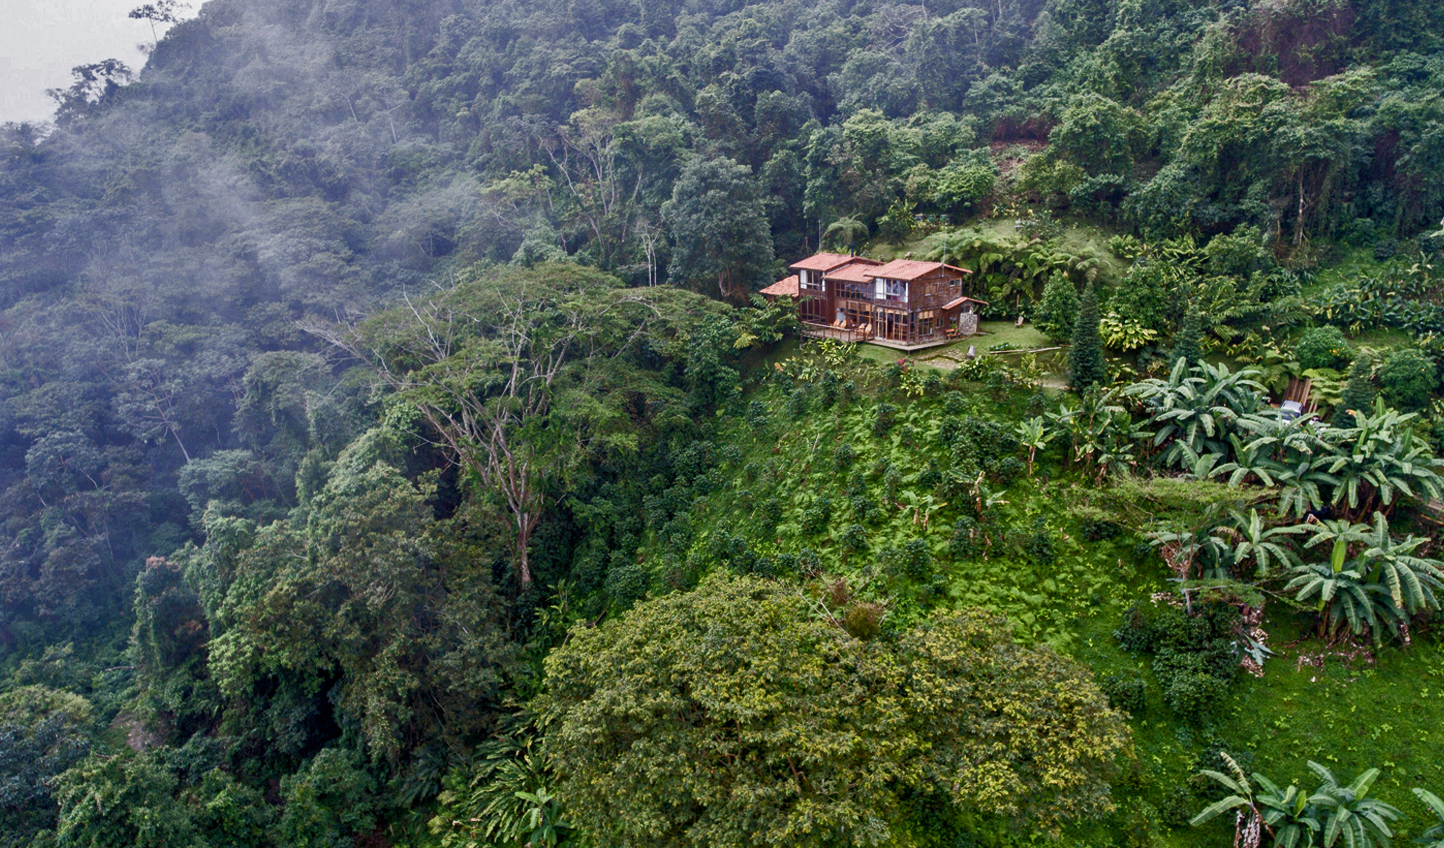 Sequestered in lush mountains is Casa Galavanta